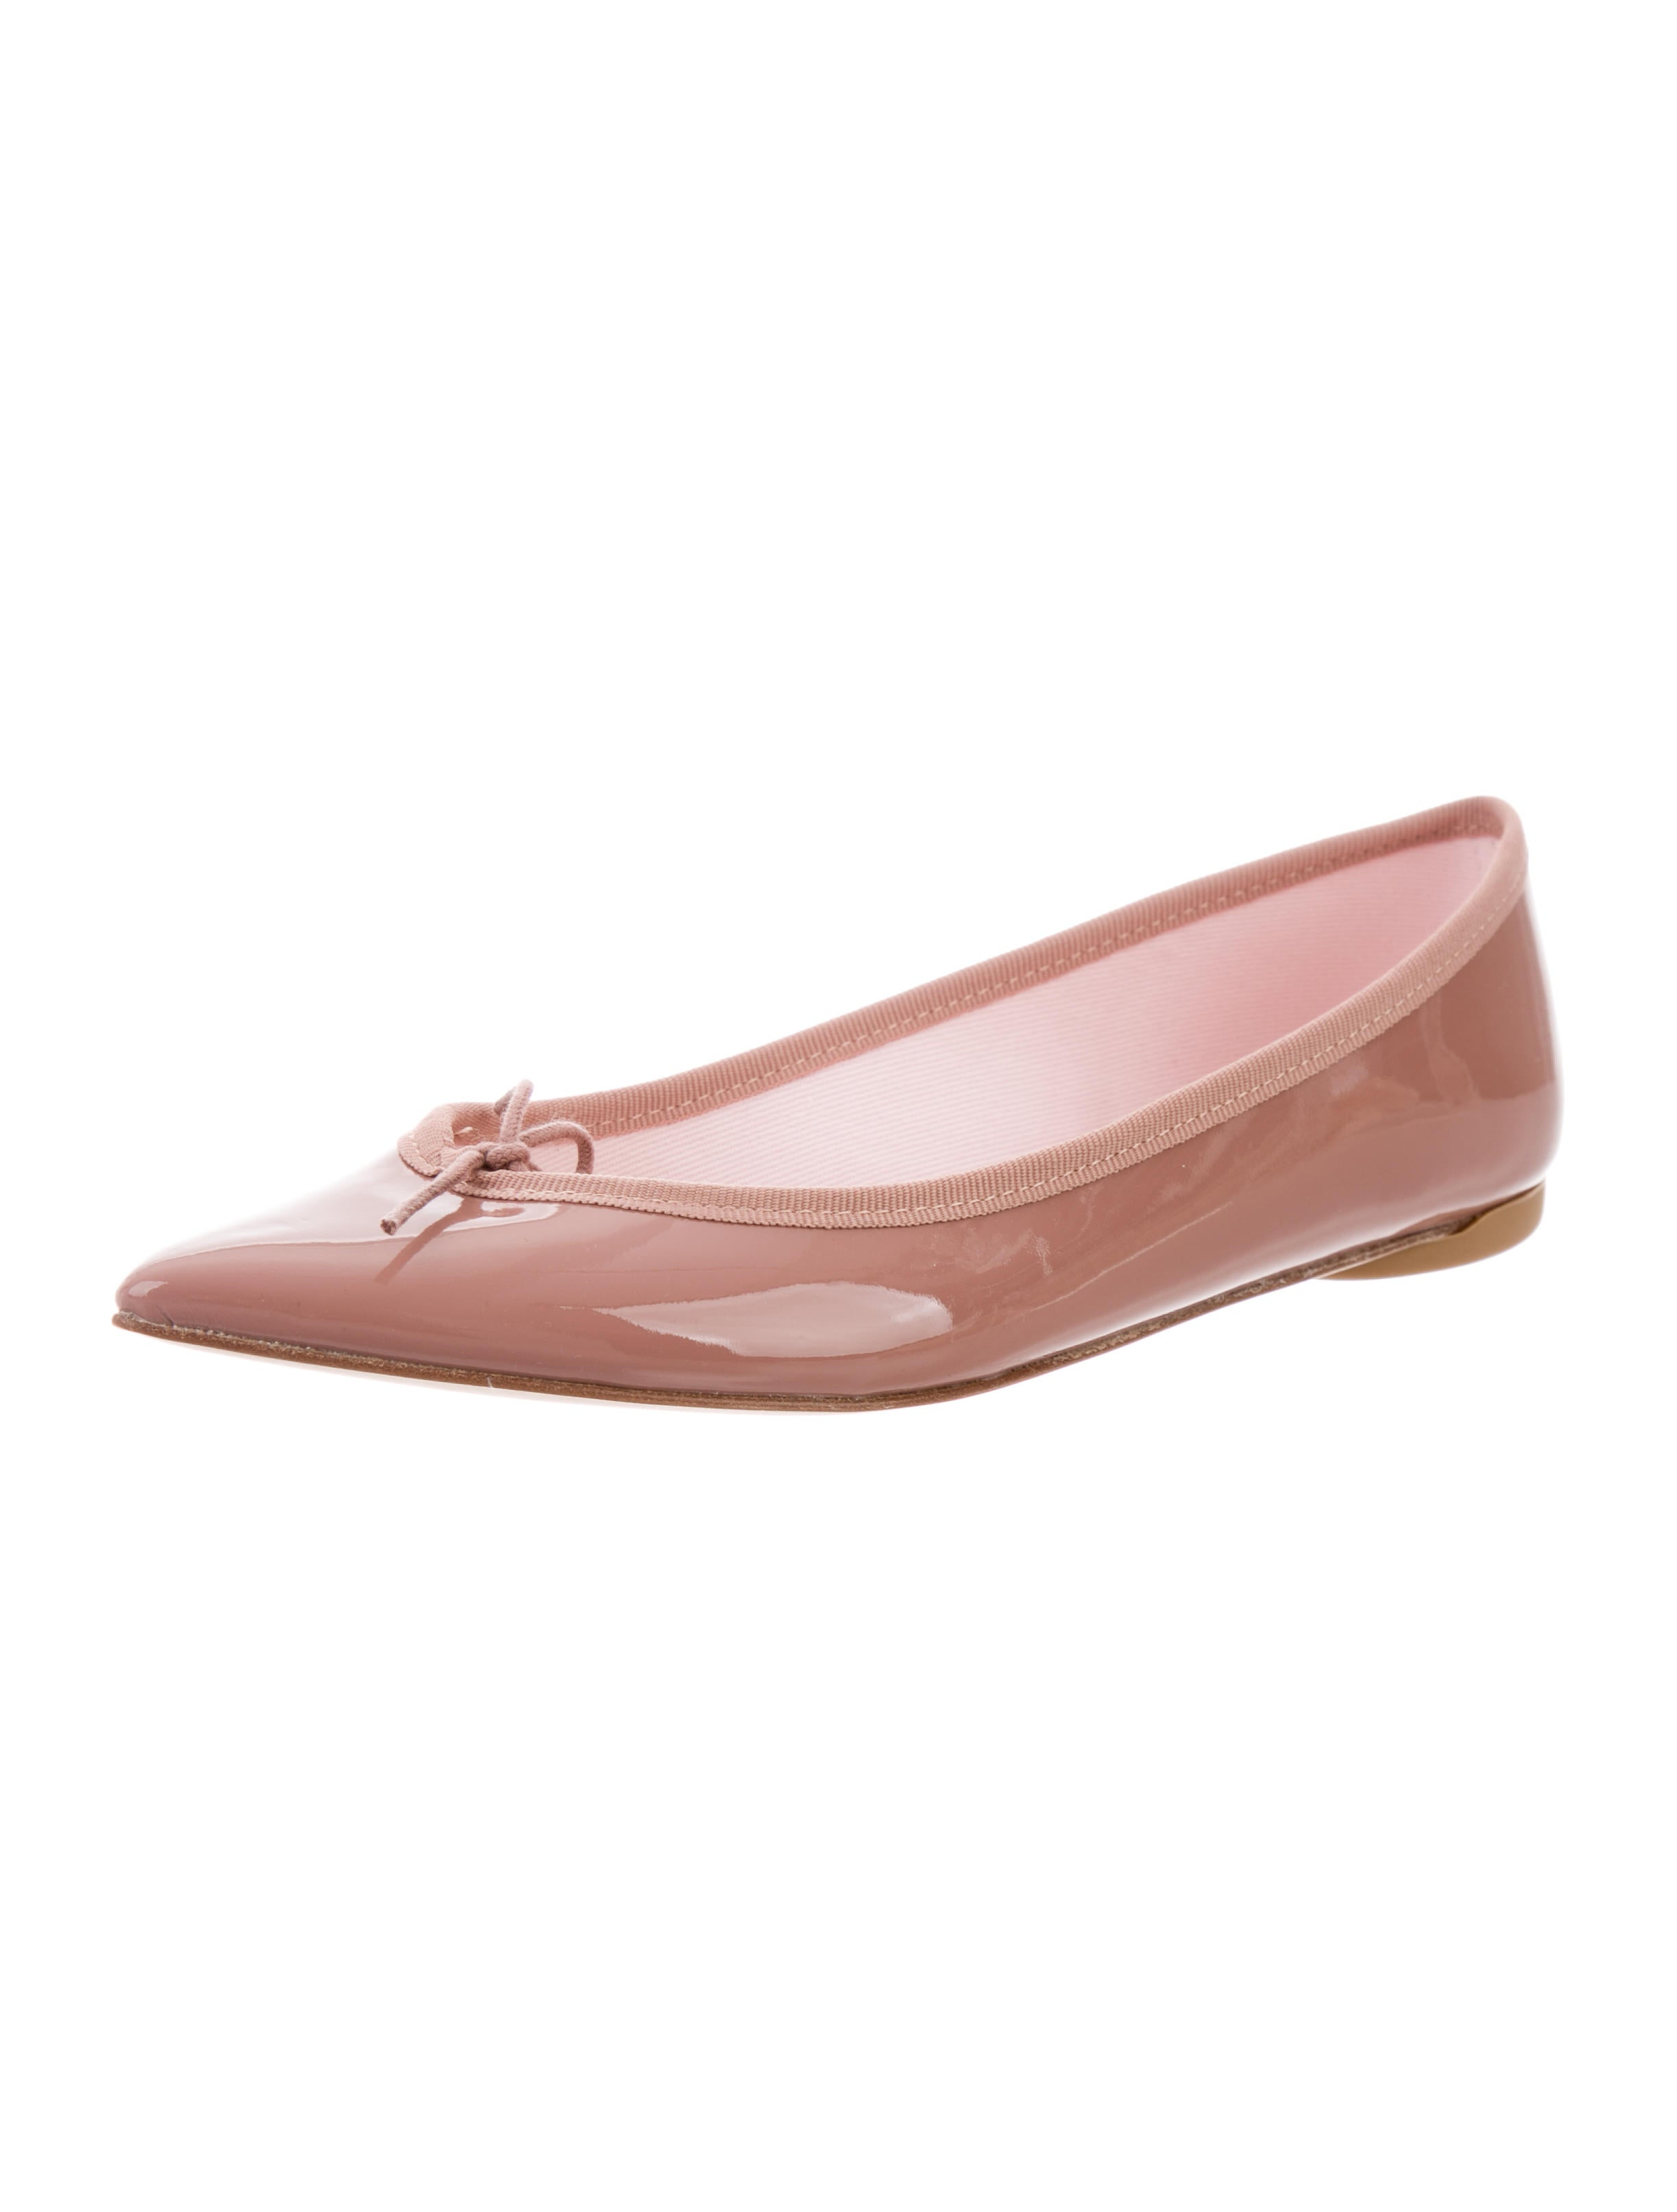 Repetto Brigitte Pointed-Toe Flats w/ Tags Inexpensive sale online quality free shipping get authentic free shipping from china best wholesale k9HDe39